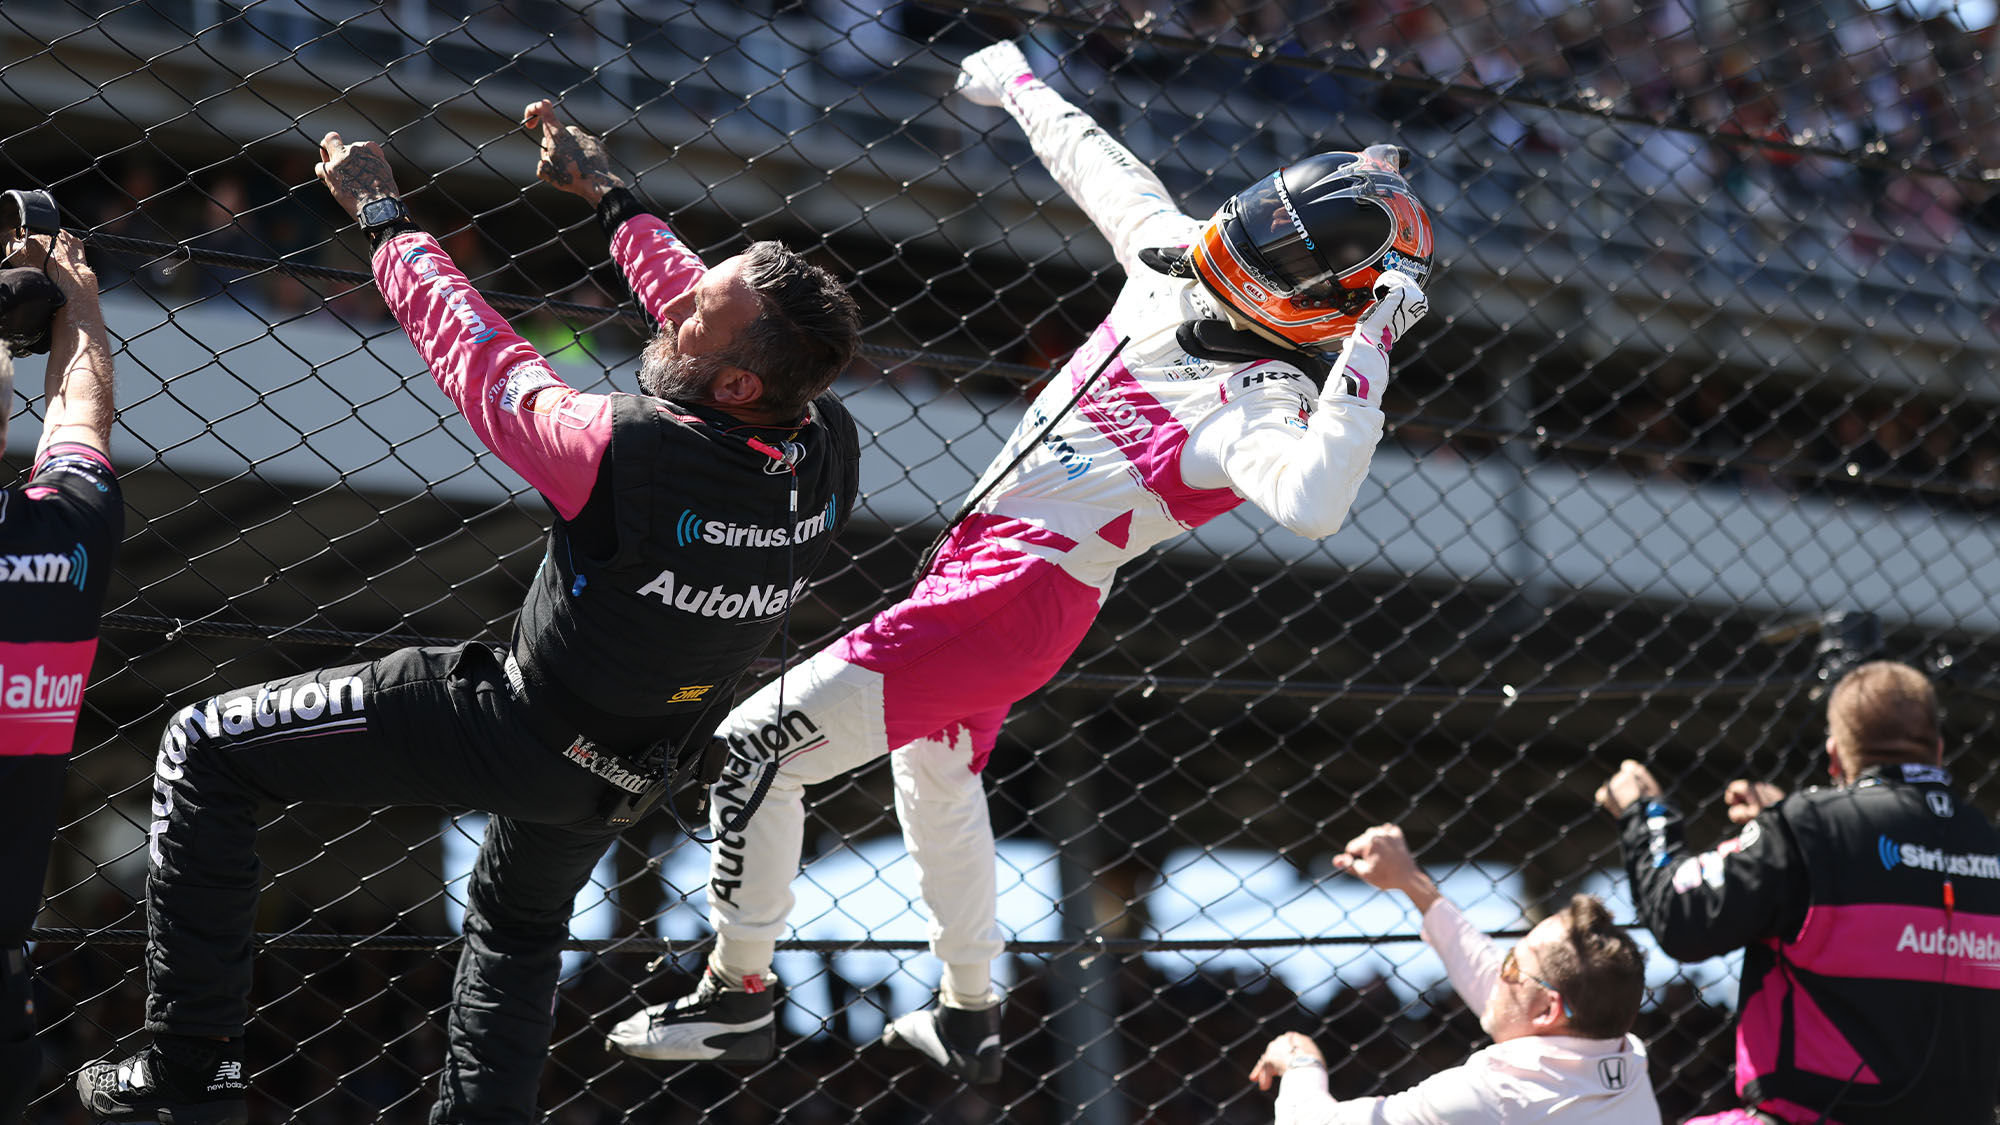 Castroneves climbs fence after winning Indy 500